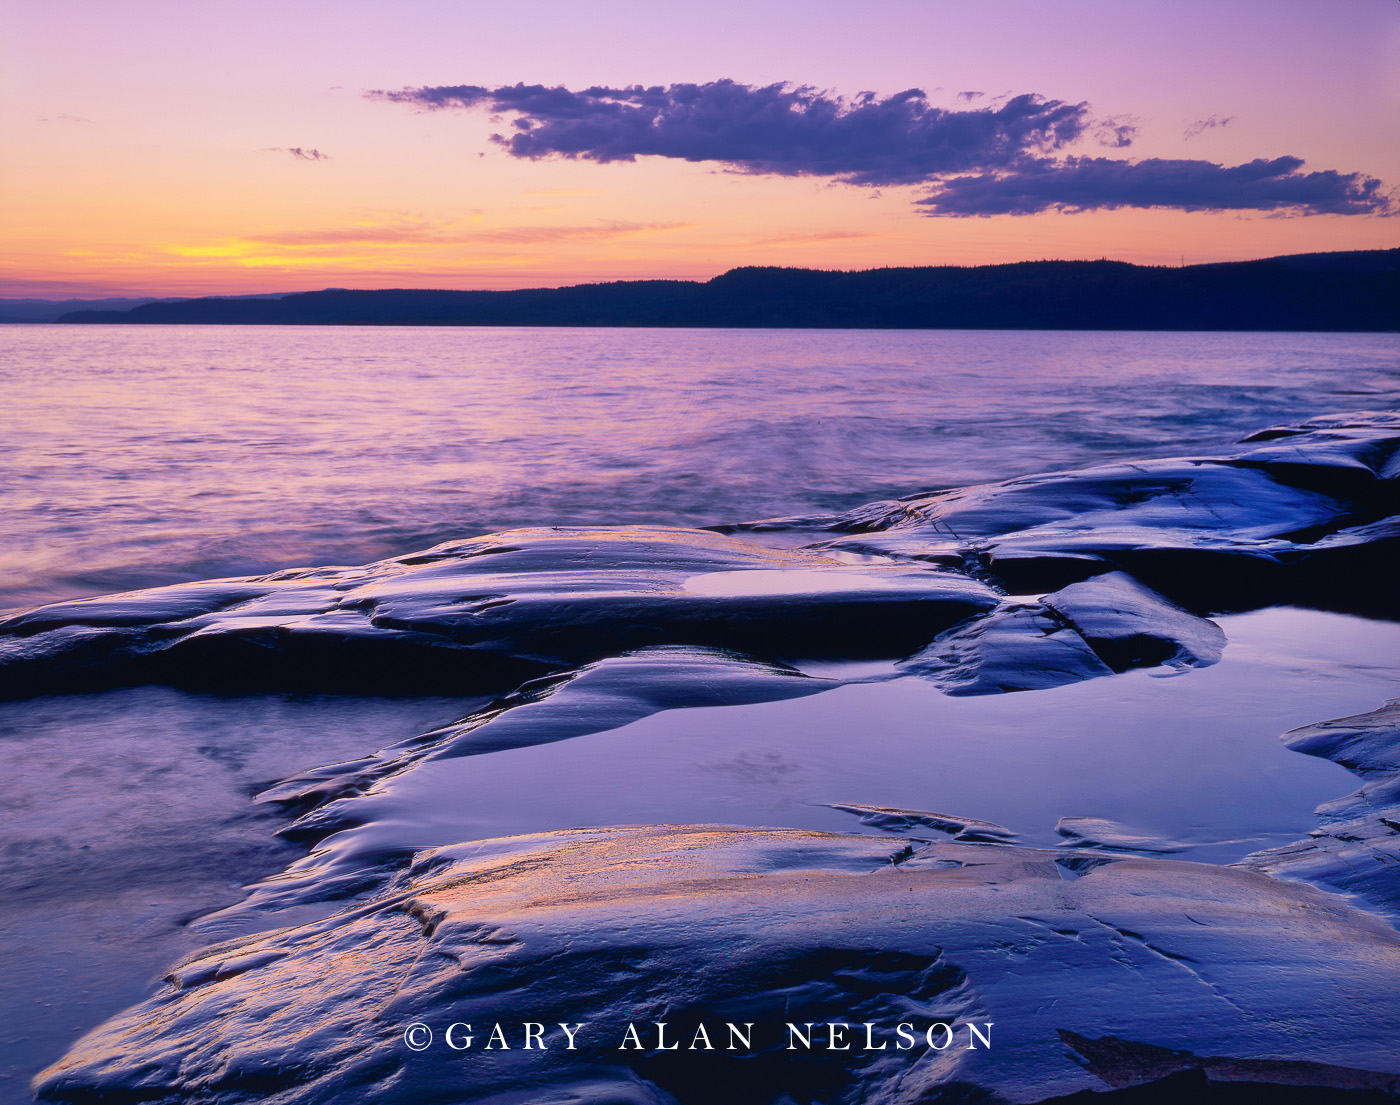 Neys Provincial Park, Ontario, Canada, lake superior, photo